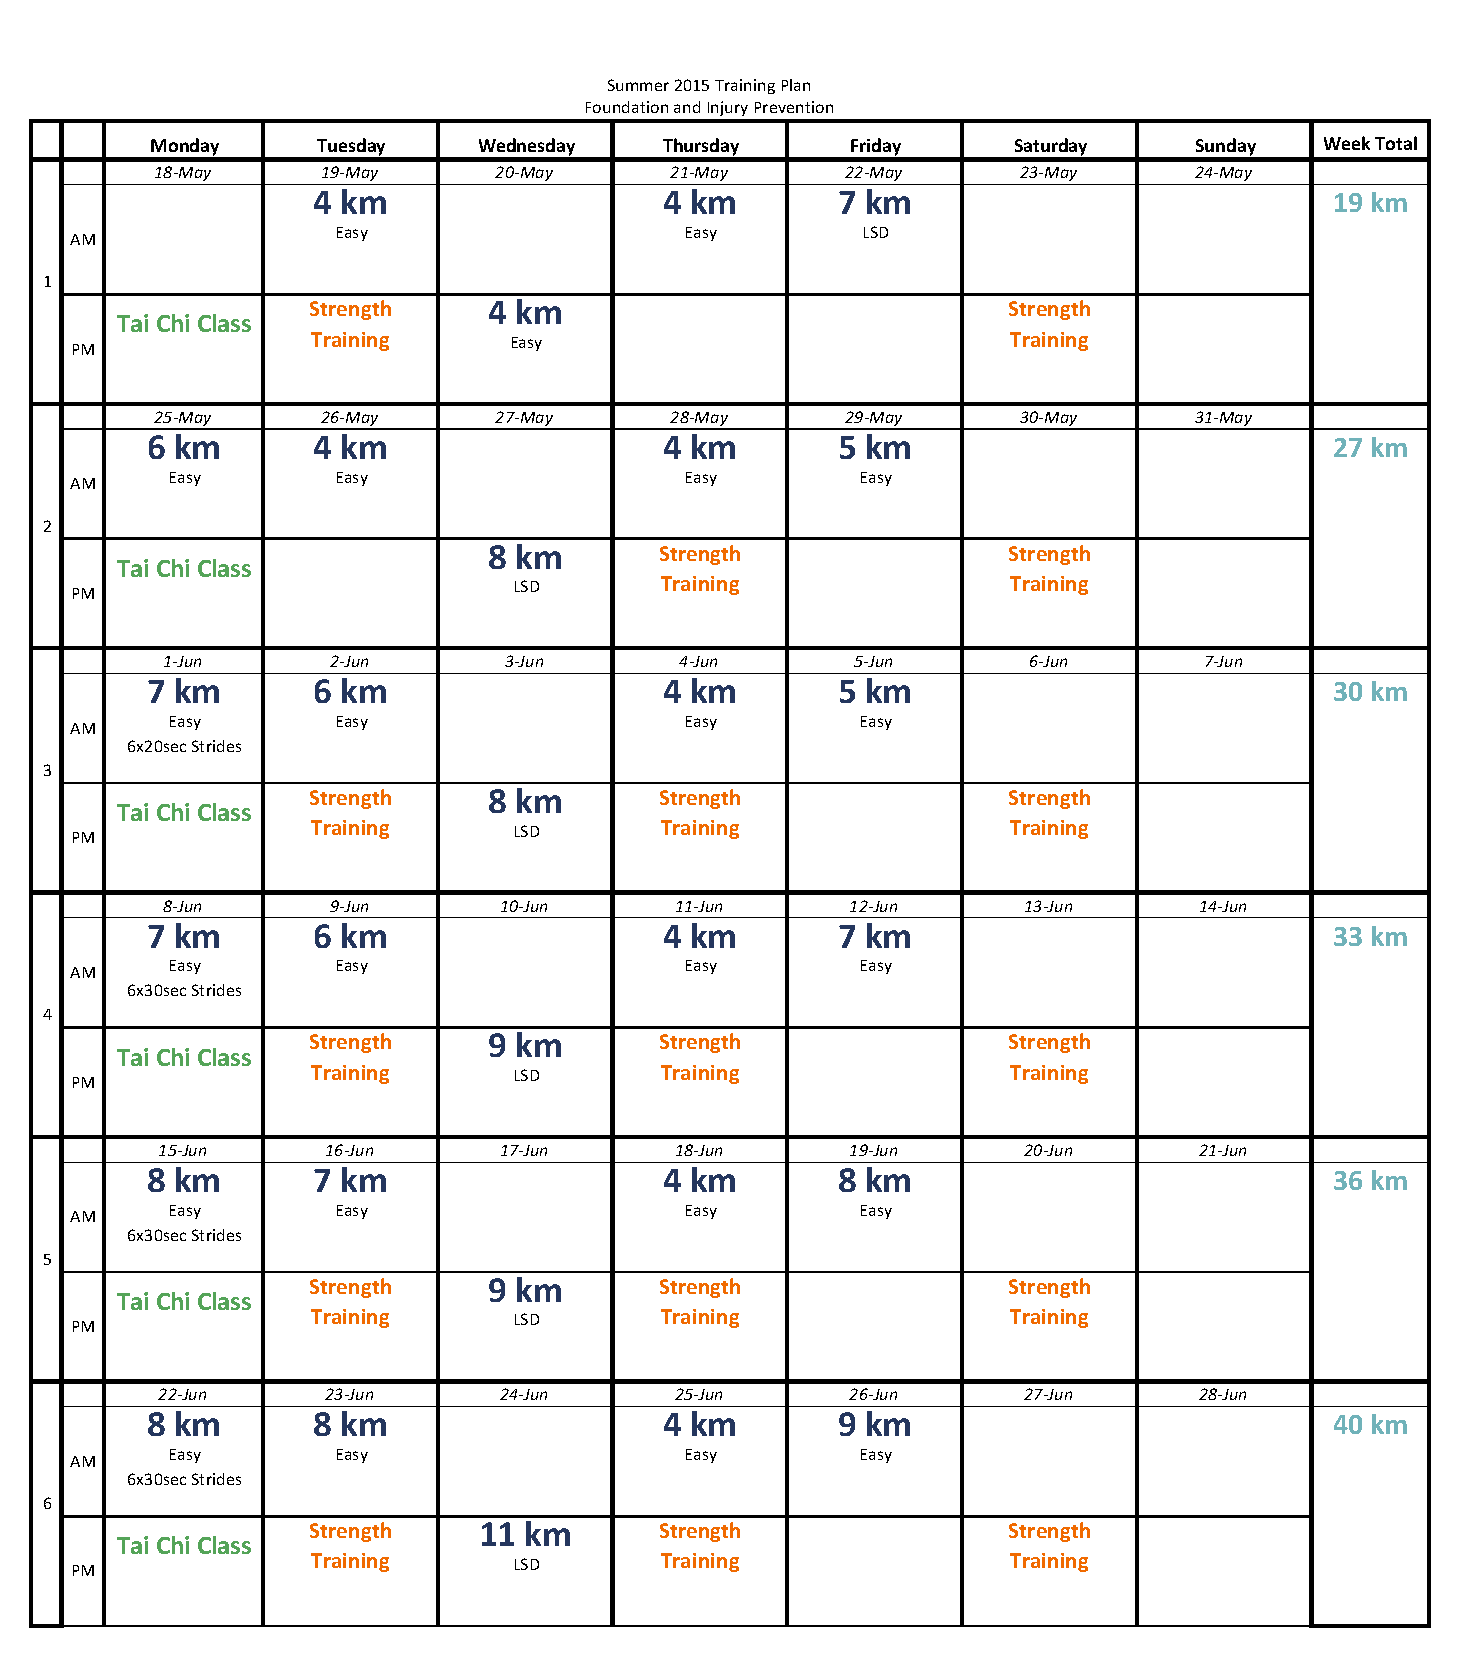 My Spring 2015 Training Plan: Foundation & Injury Prevention Phase (Revision 3)